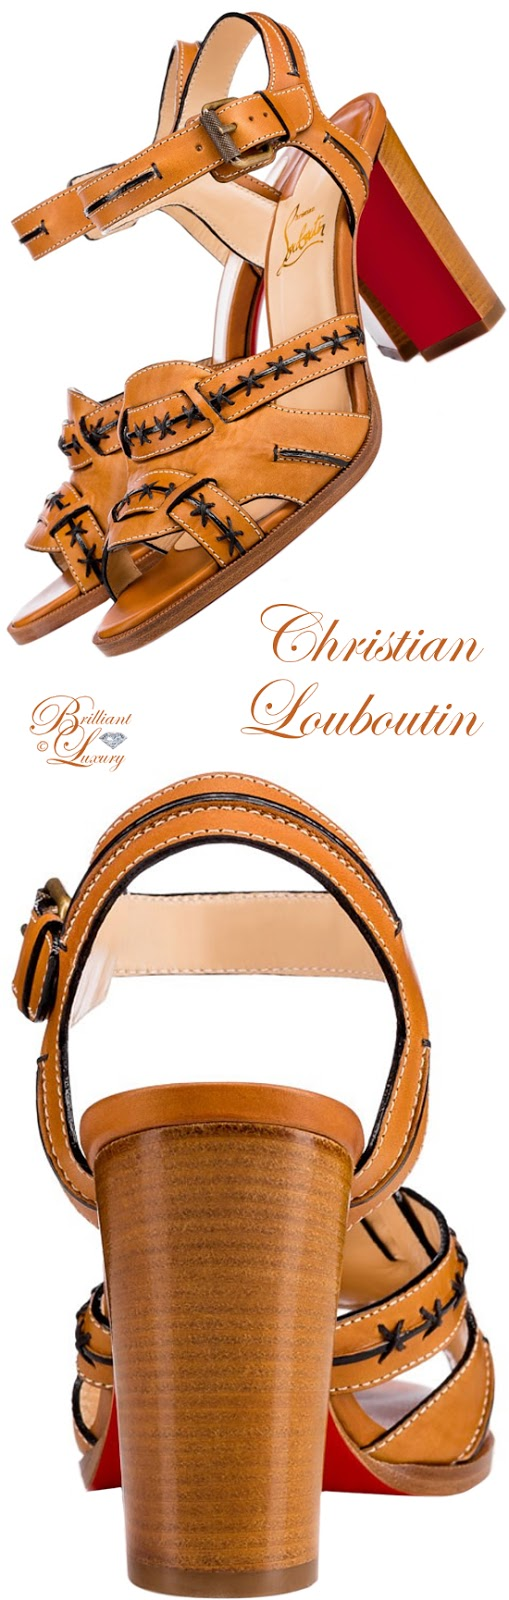 Brilliant Luxury ♦ Christian Louboutin Vavale Sandals